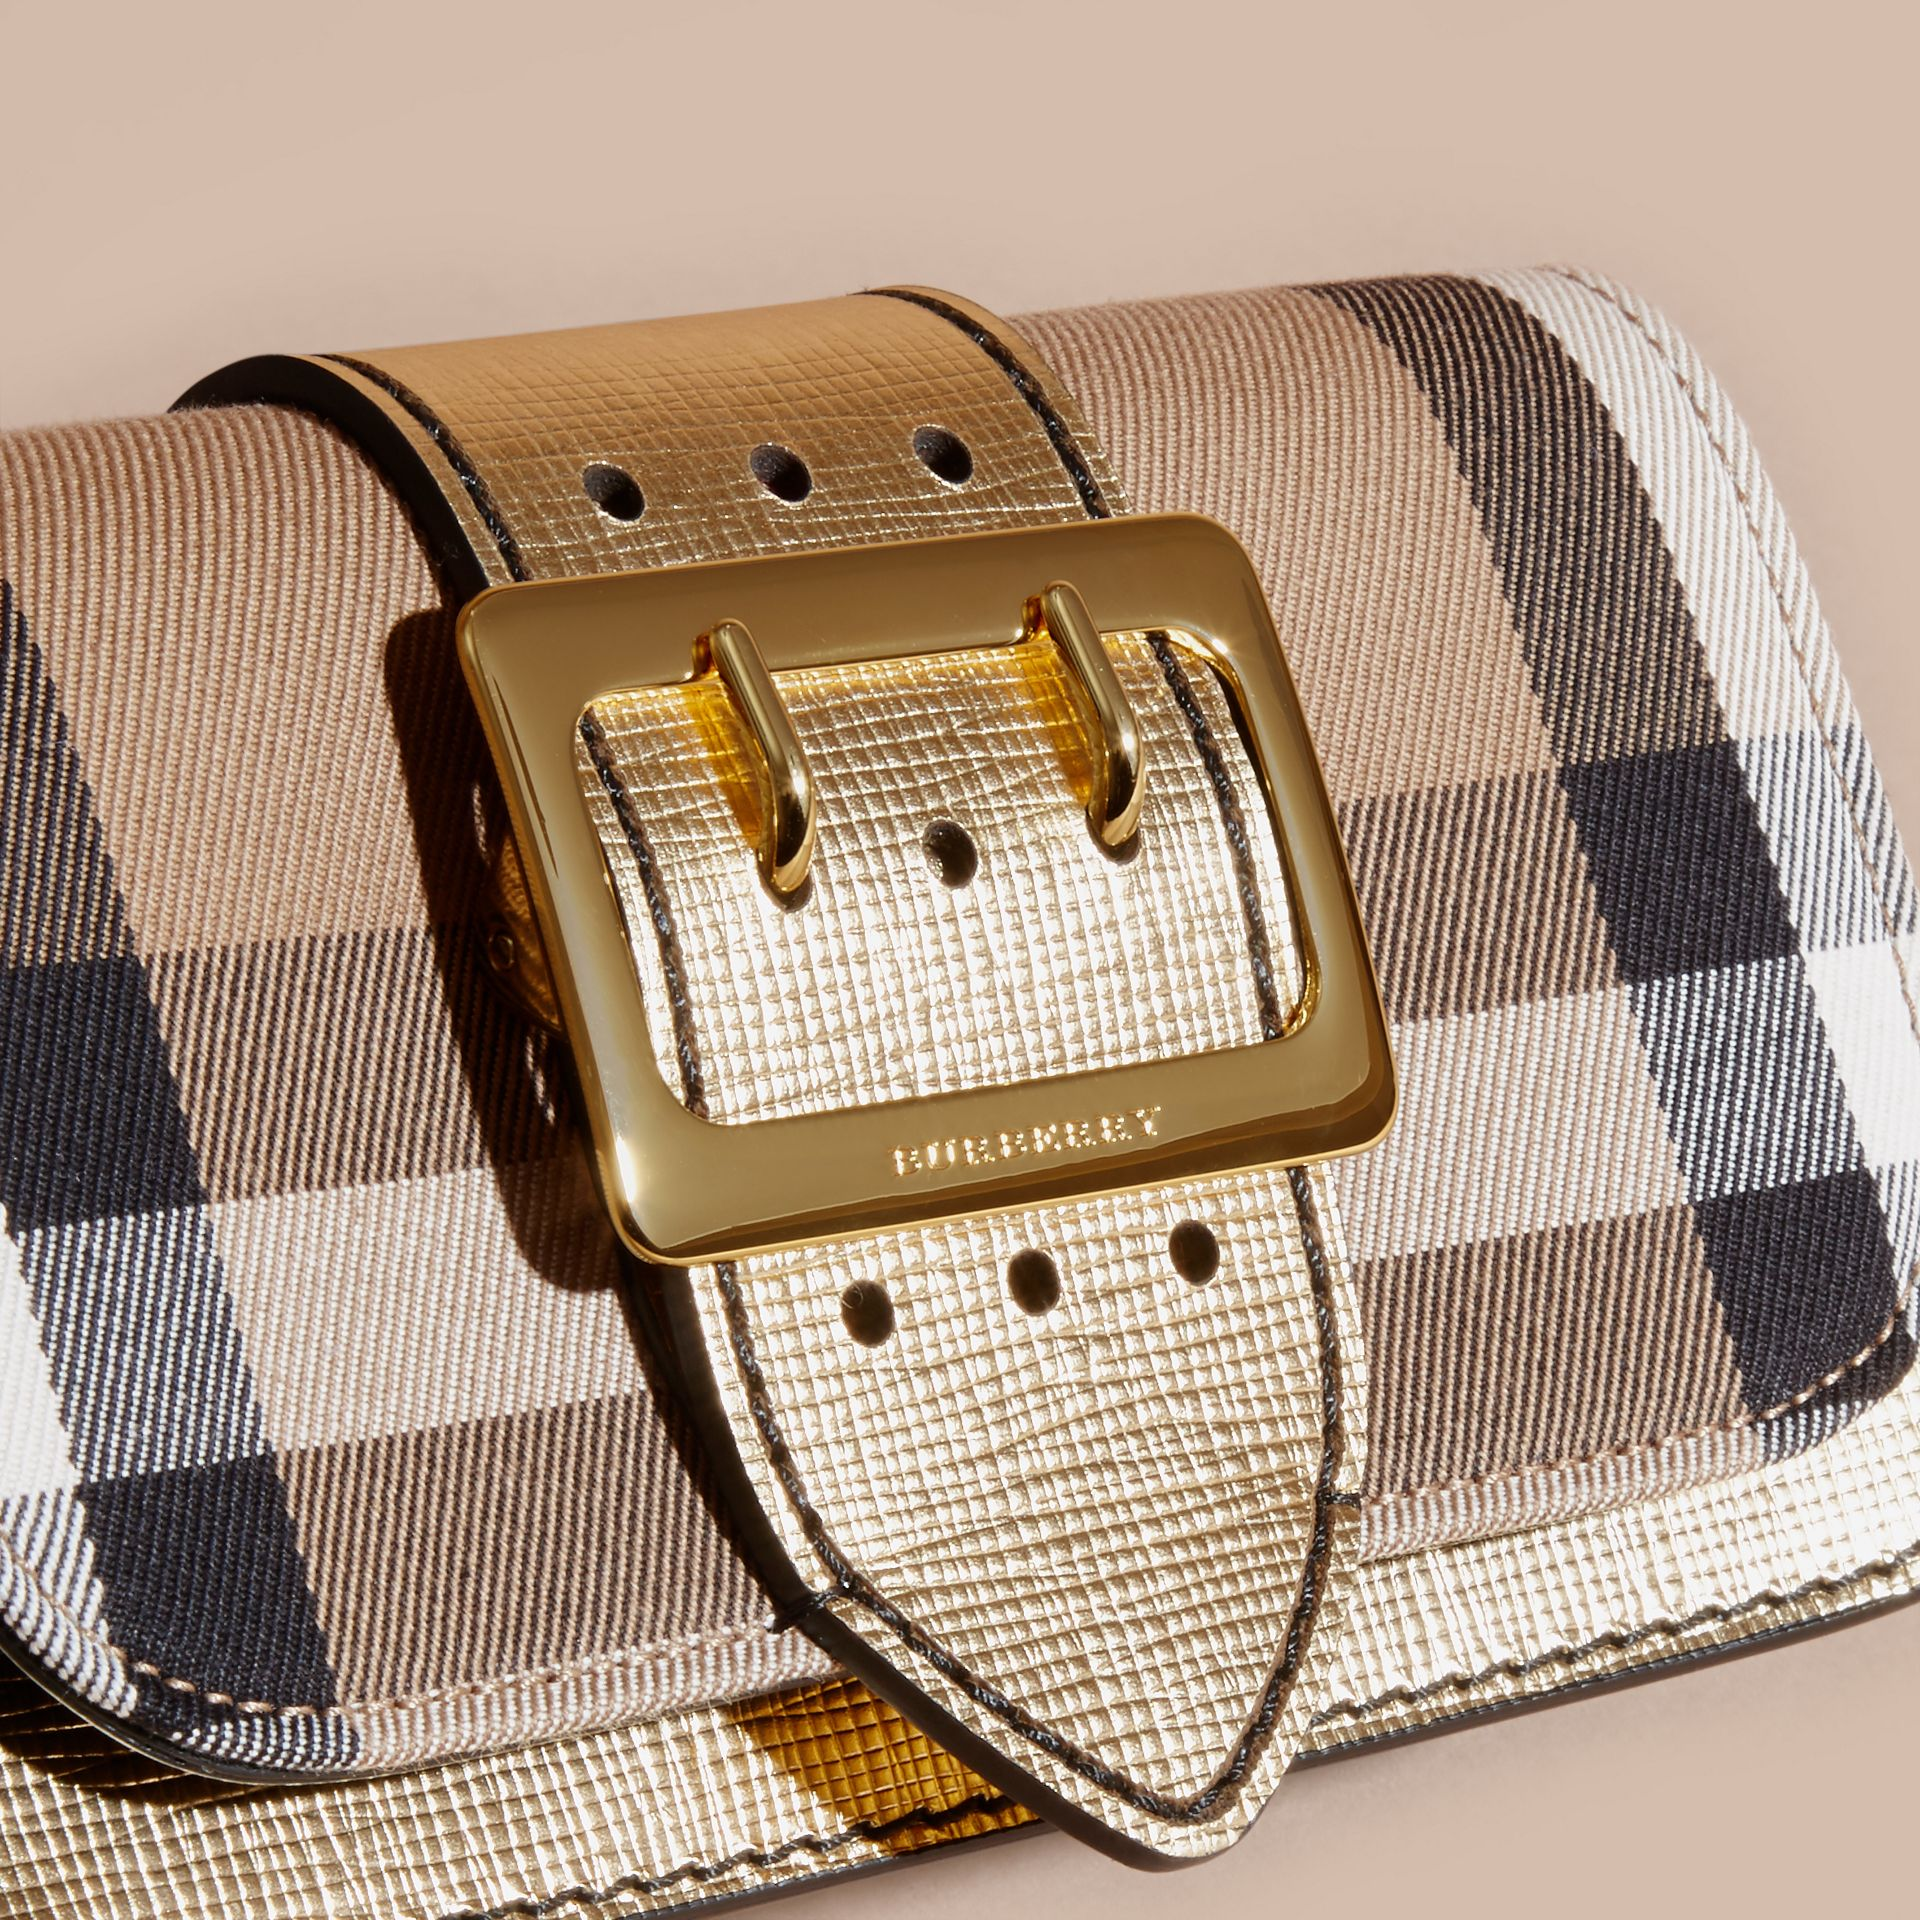 The Small Buckle Bag in House Check and Leather Gold - gallery image 2